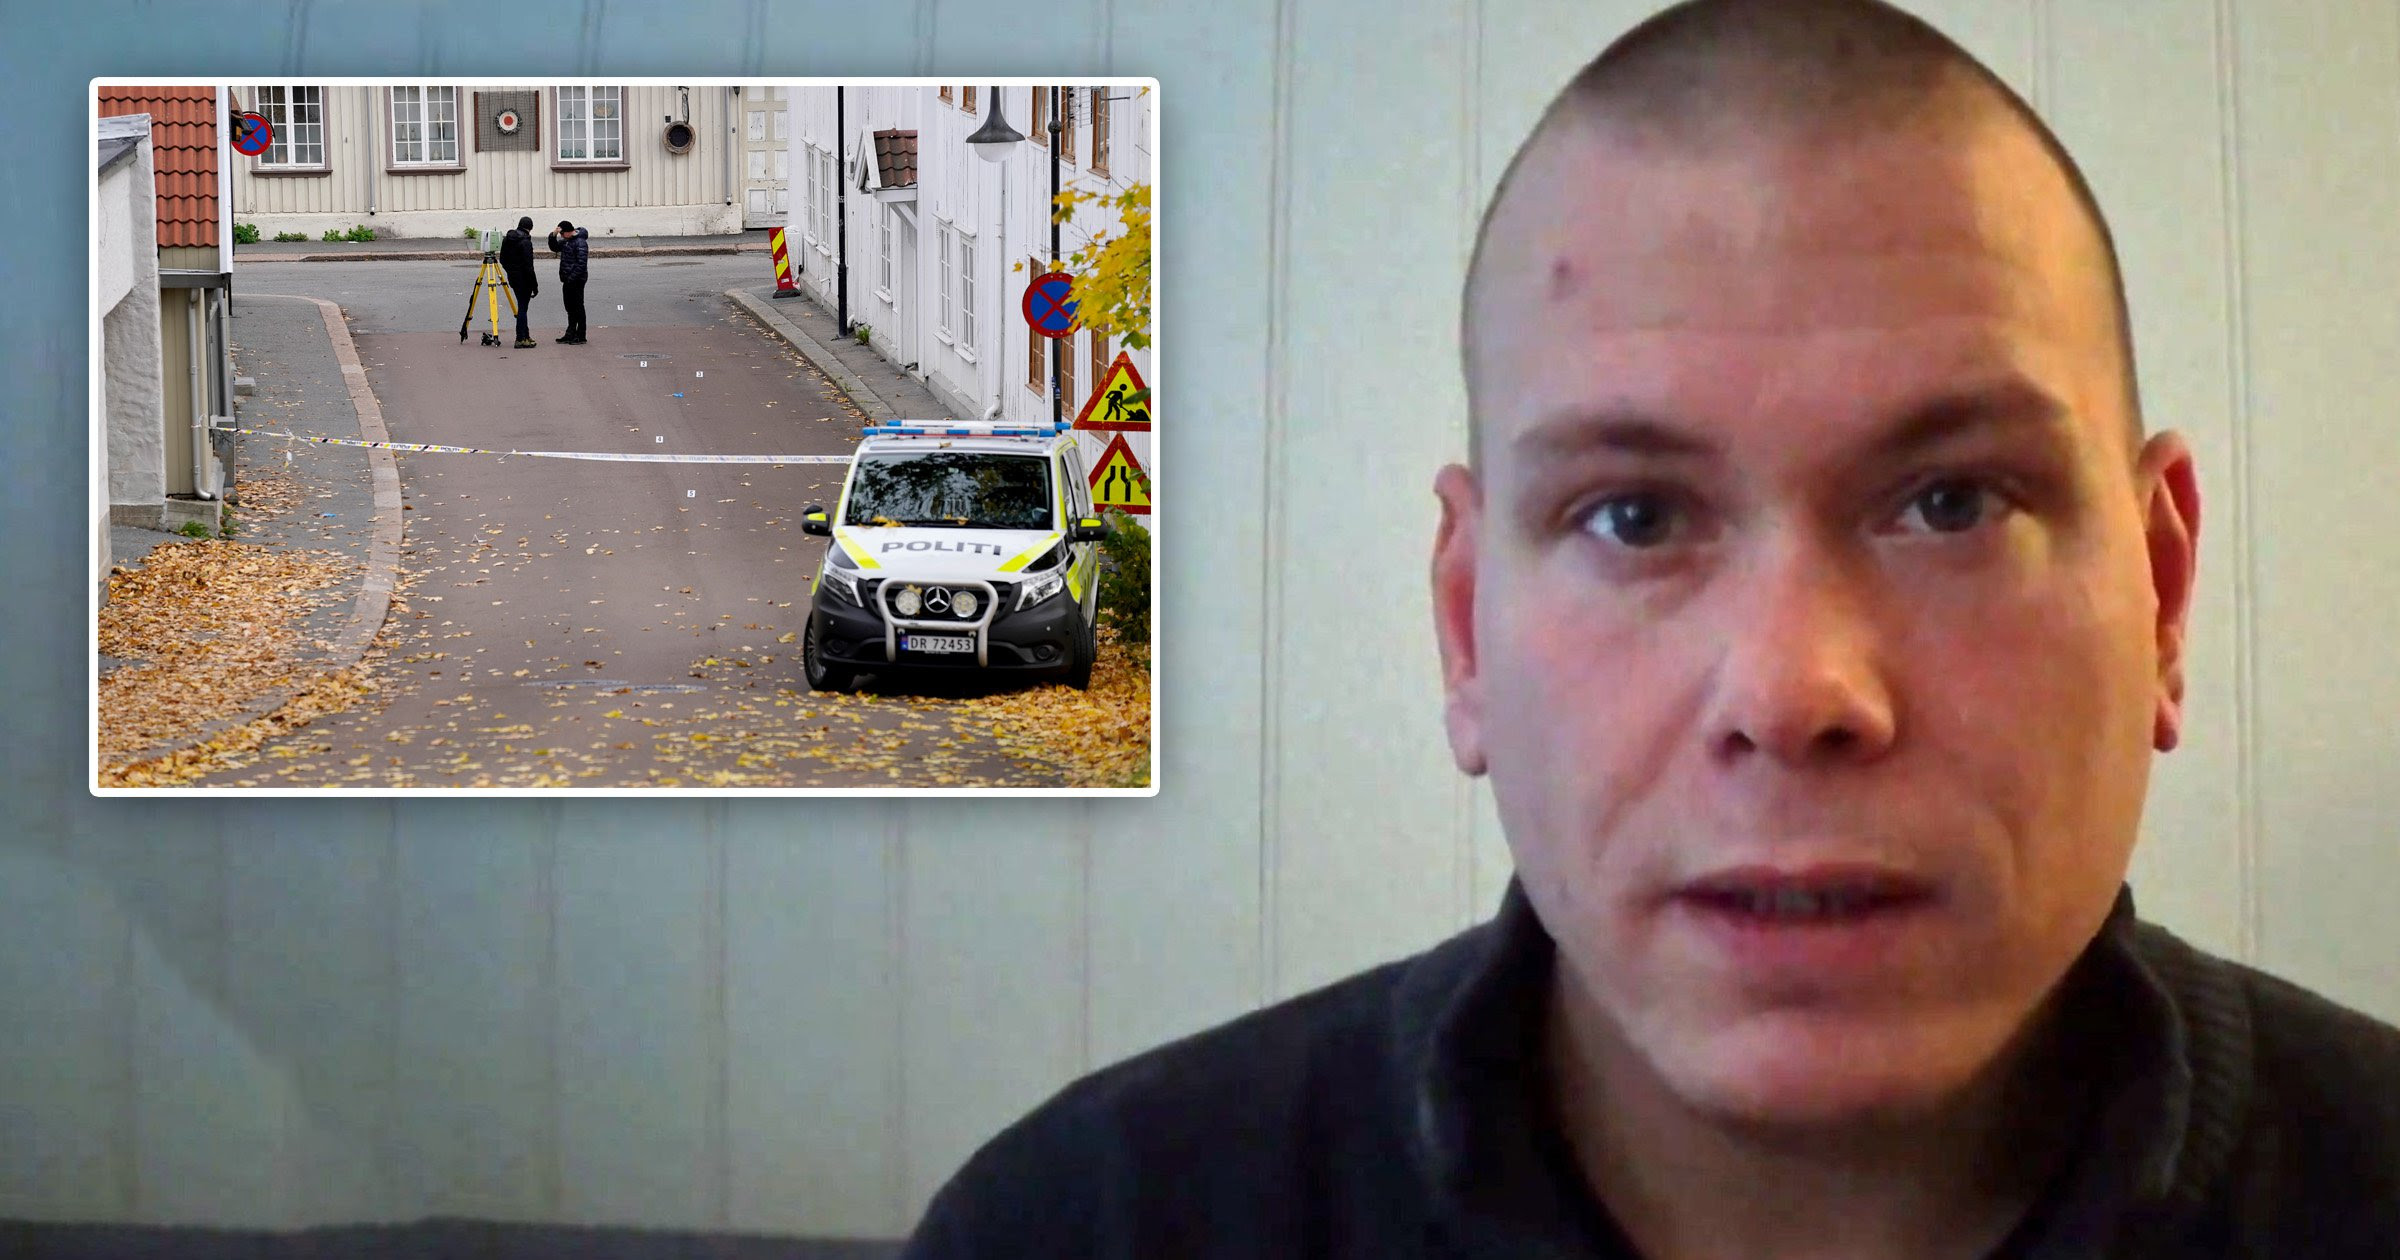 Norway: Suspect in bow and arrow killings pictured for first time